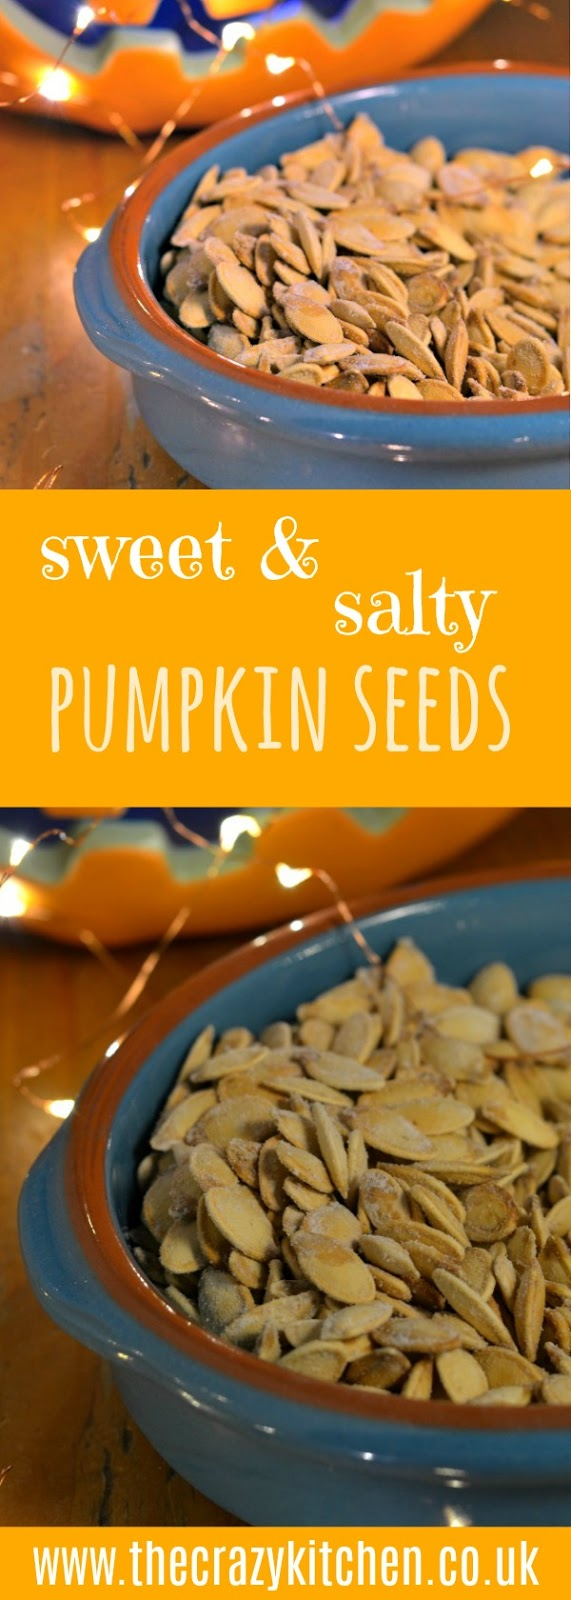 The Crazy Kitchen: Sweet & Salty Roasted Pumpkin Seeds